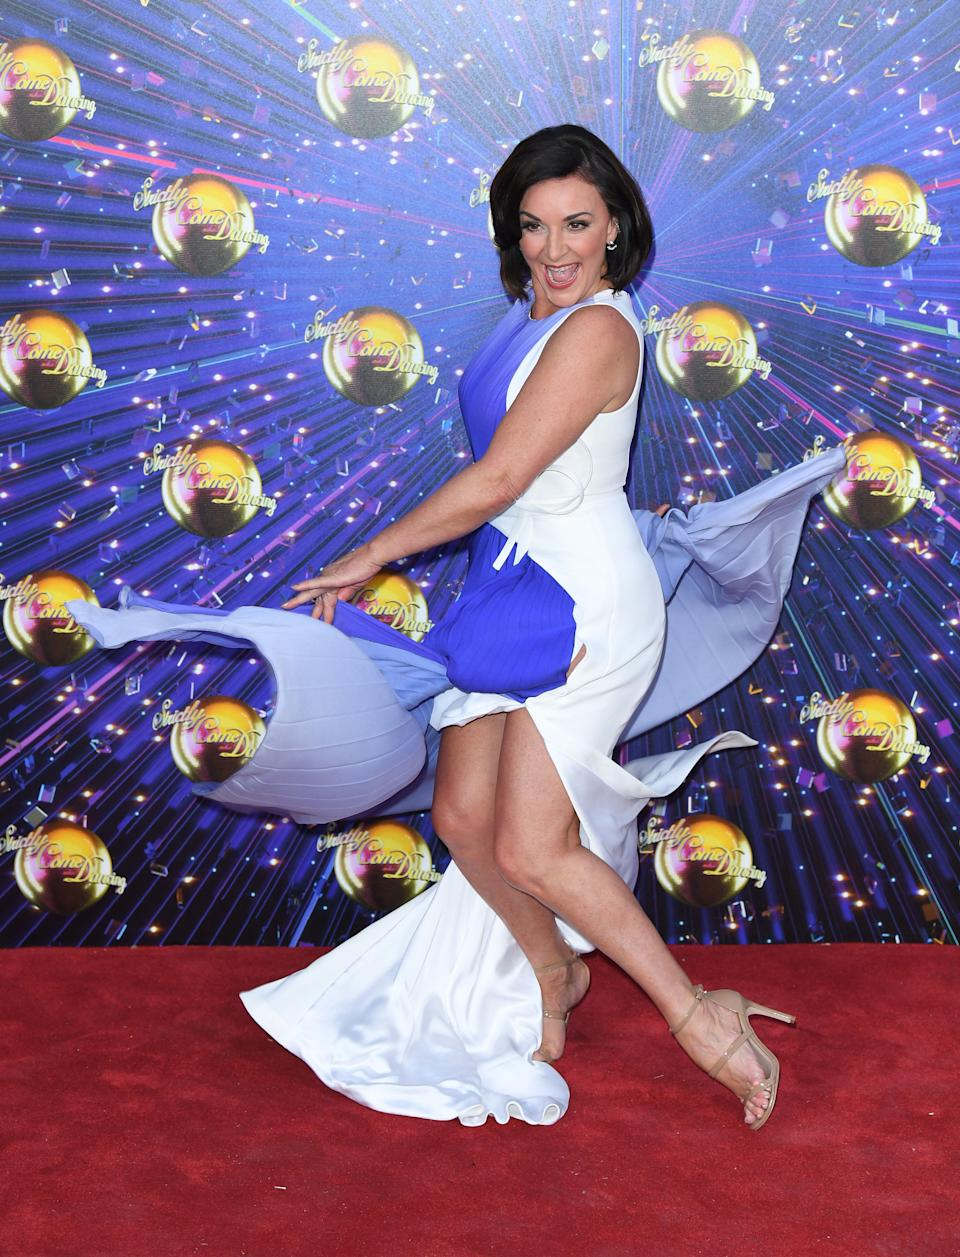 """LONDON, ENGLAND - AUGUST 26: Shirley Ballas attends the """"Strictly Come Dancing"""" launch show red carpet arrivals at Television Centre on August 26, 2019 in London, England. (Photo by Karwai Tang/WireImage)"""